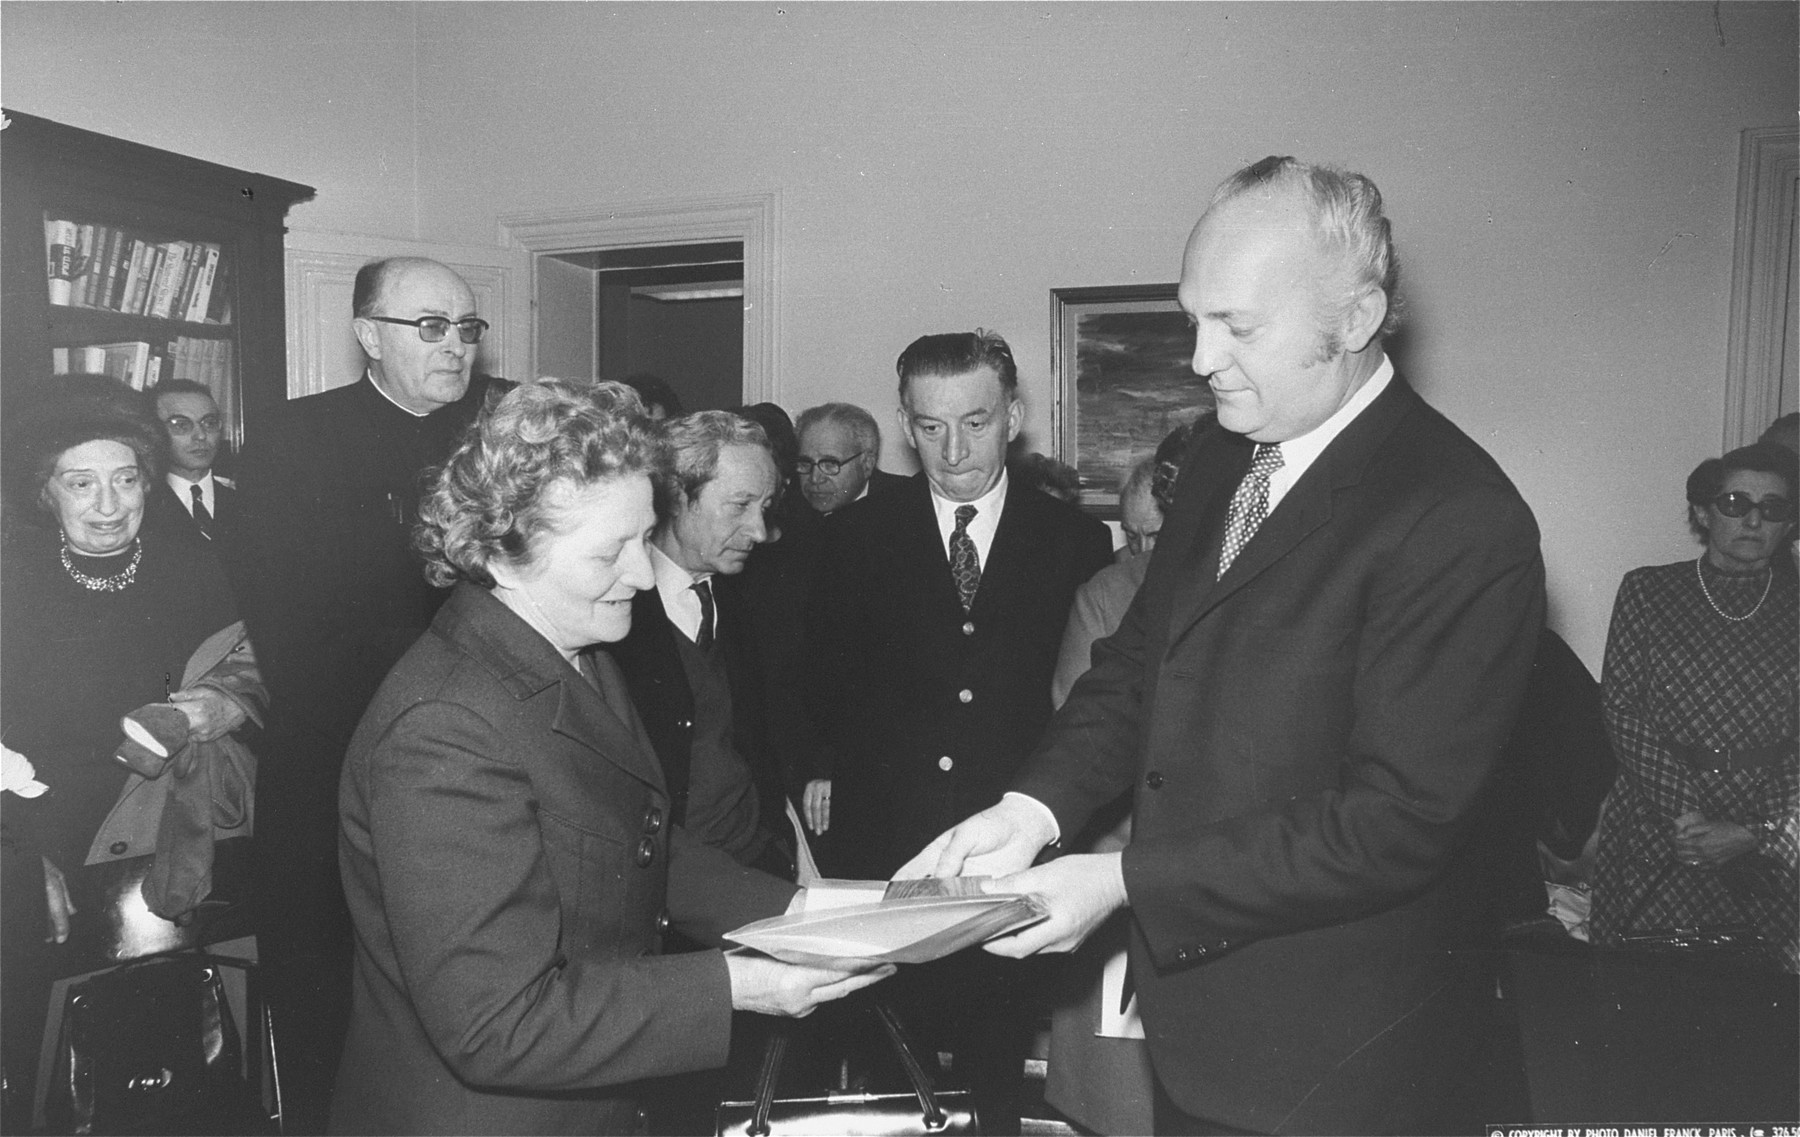 The Israeli ambassador in Paris presents Agnes Bertrand with a plaque naming her as one of the Righteous Among the Nations.